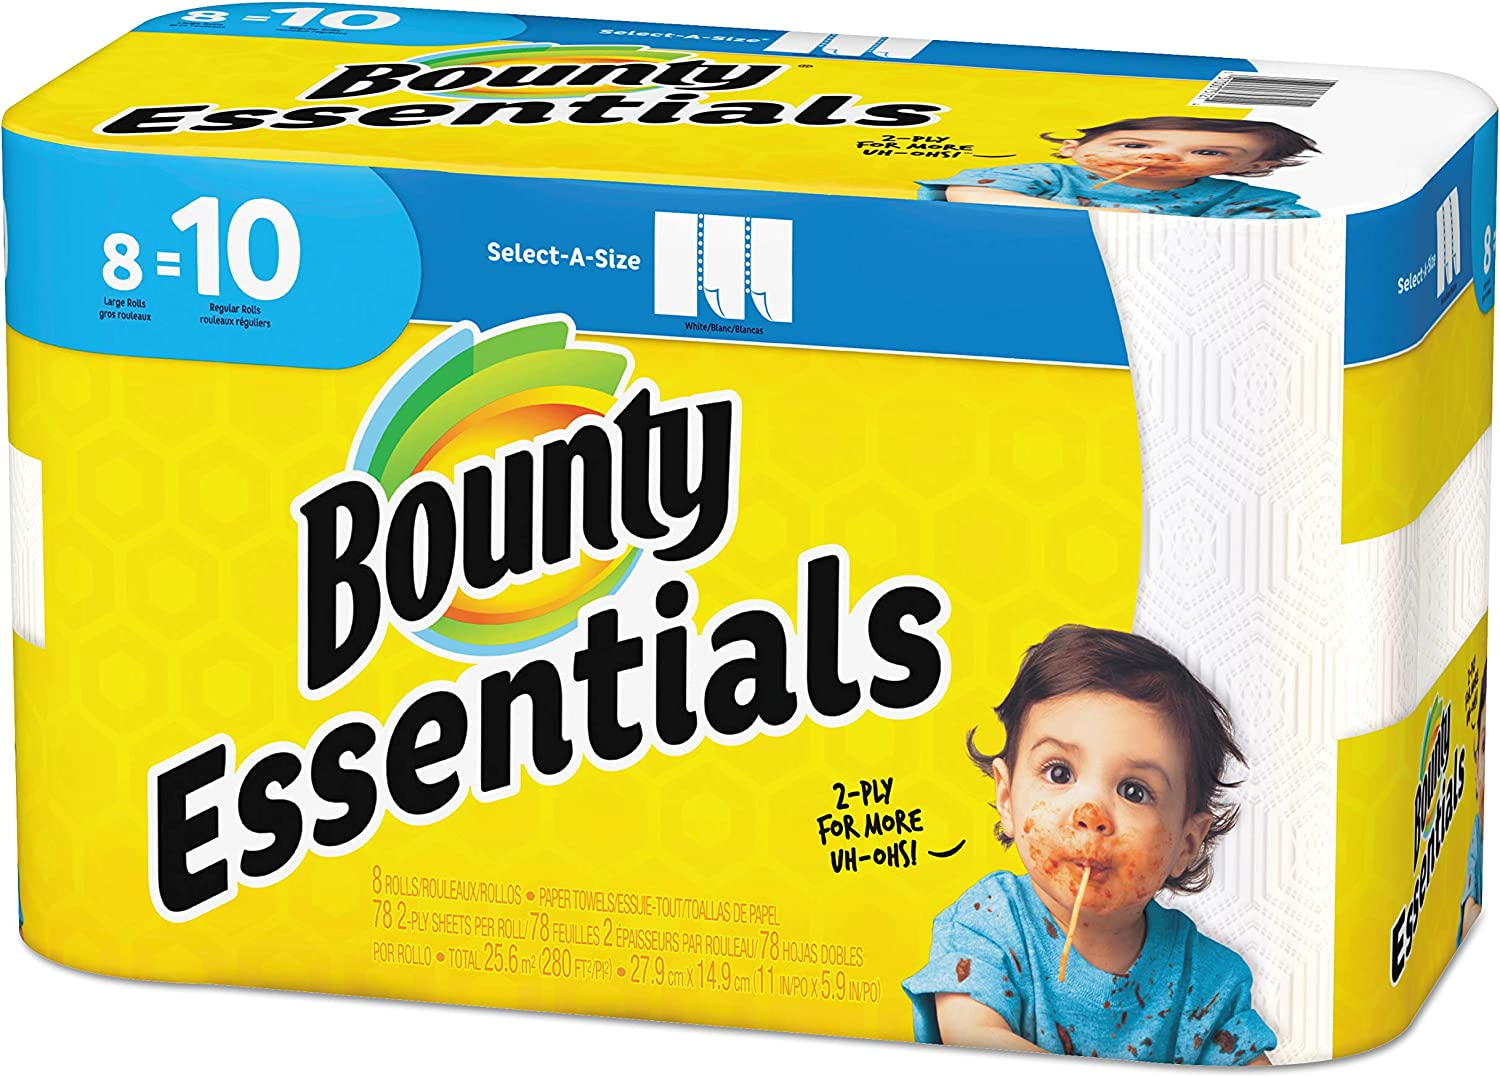 PGC75721 - Bounty Max 48% latest OFF Select-A-Size Essentials Towels